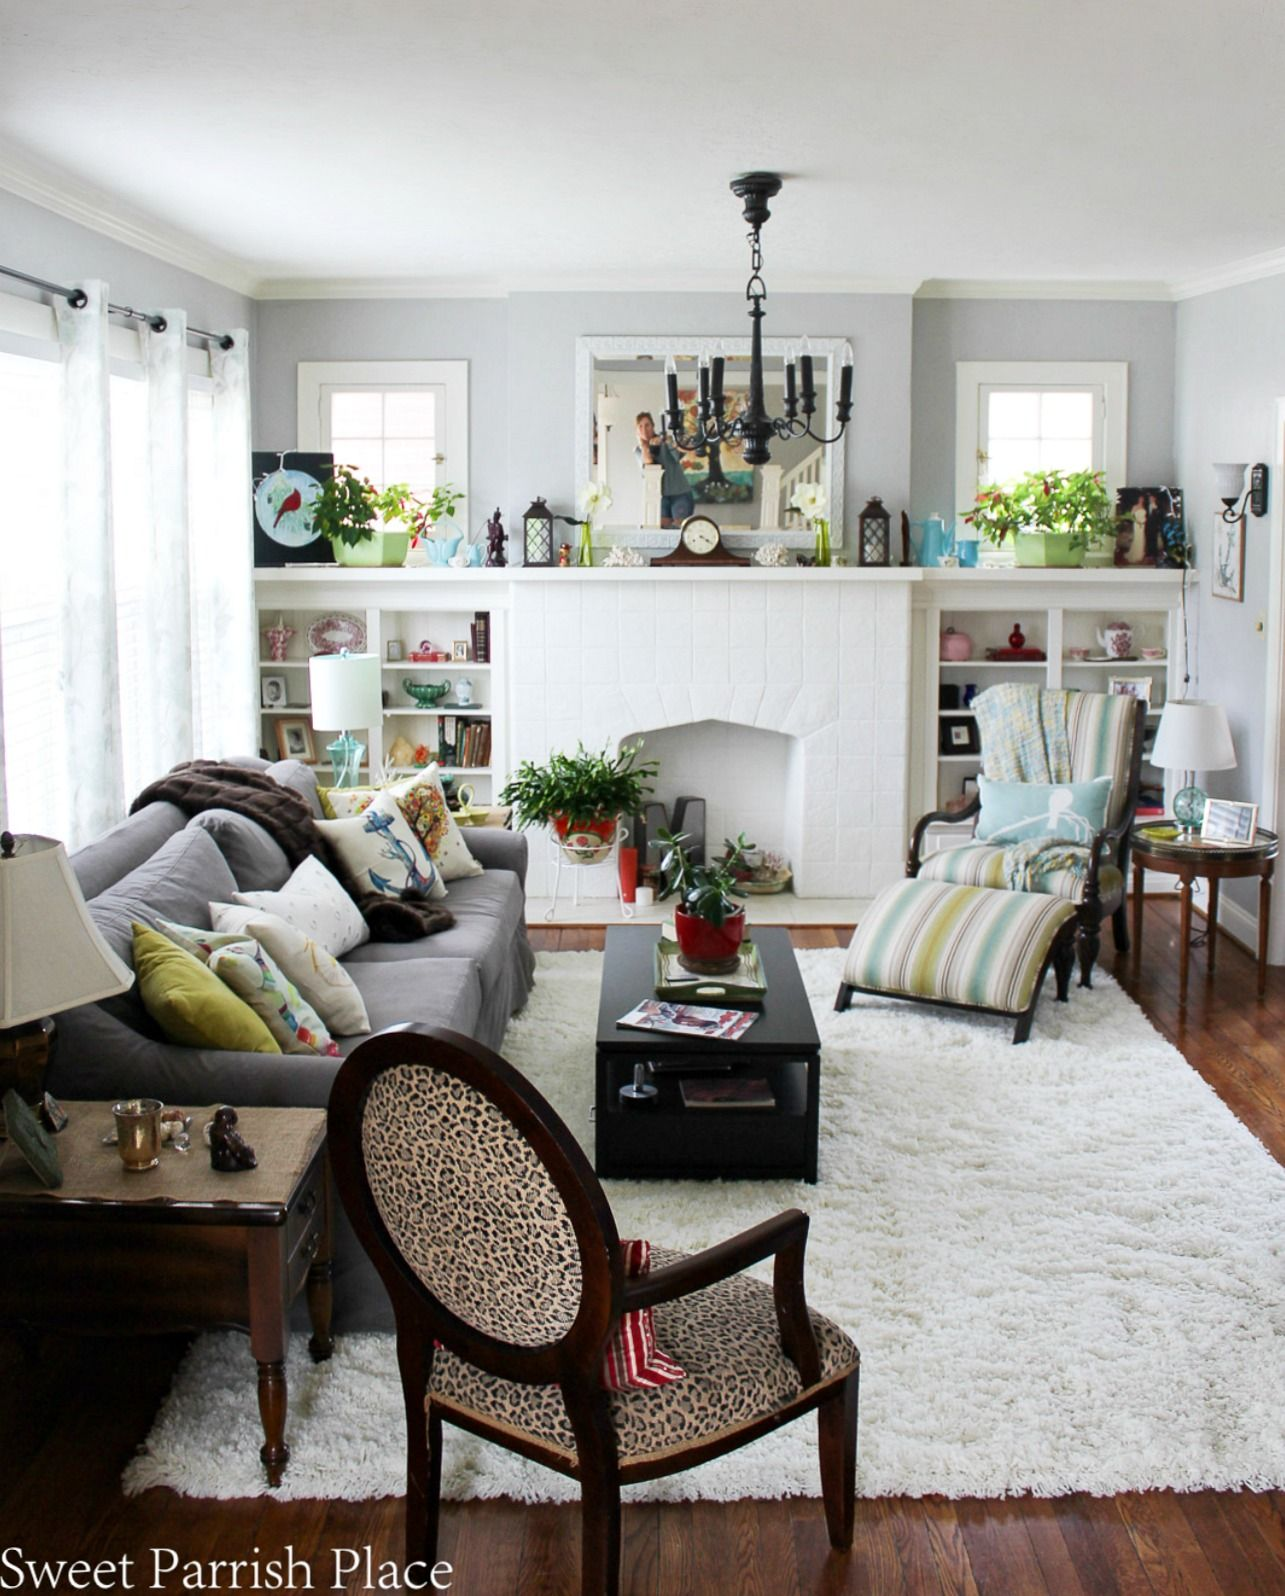 97 Year Old Home Tour Living Room Diy Home Decor Pinterest